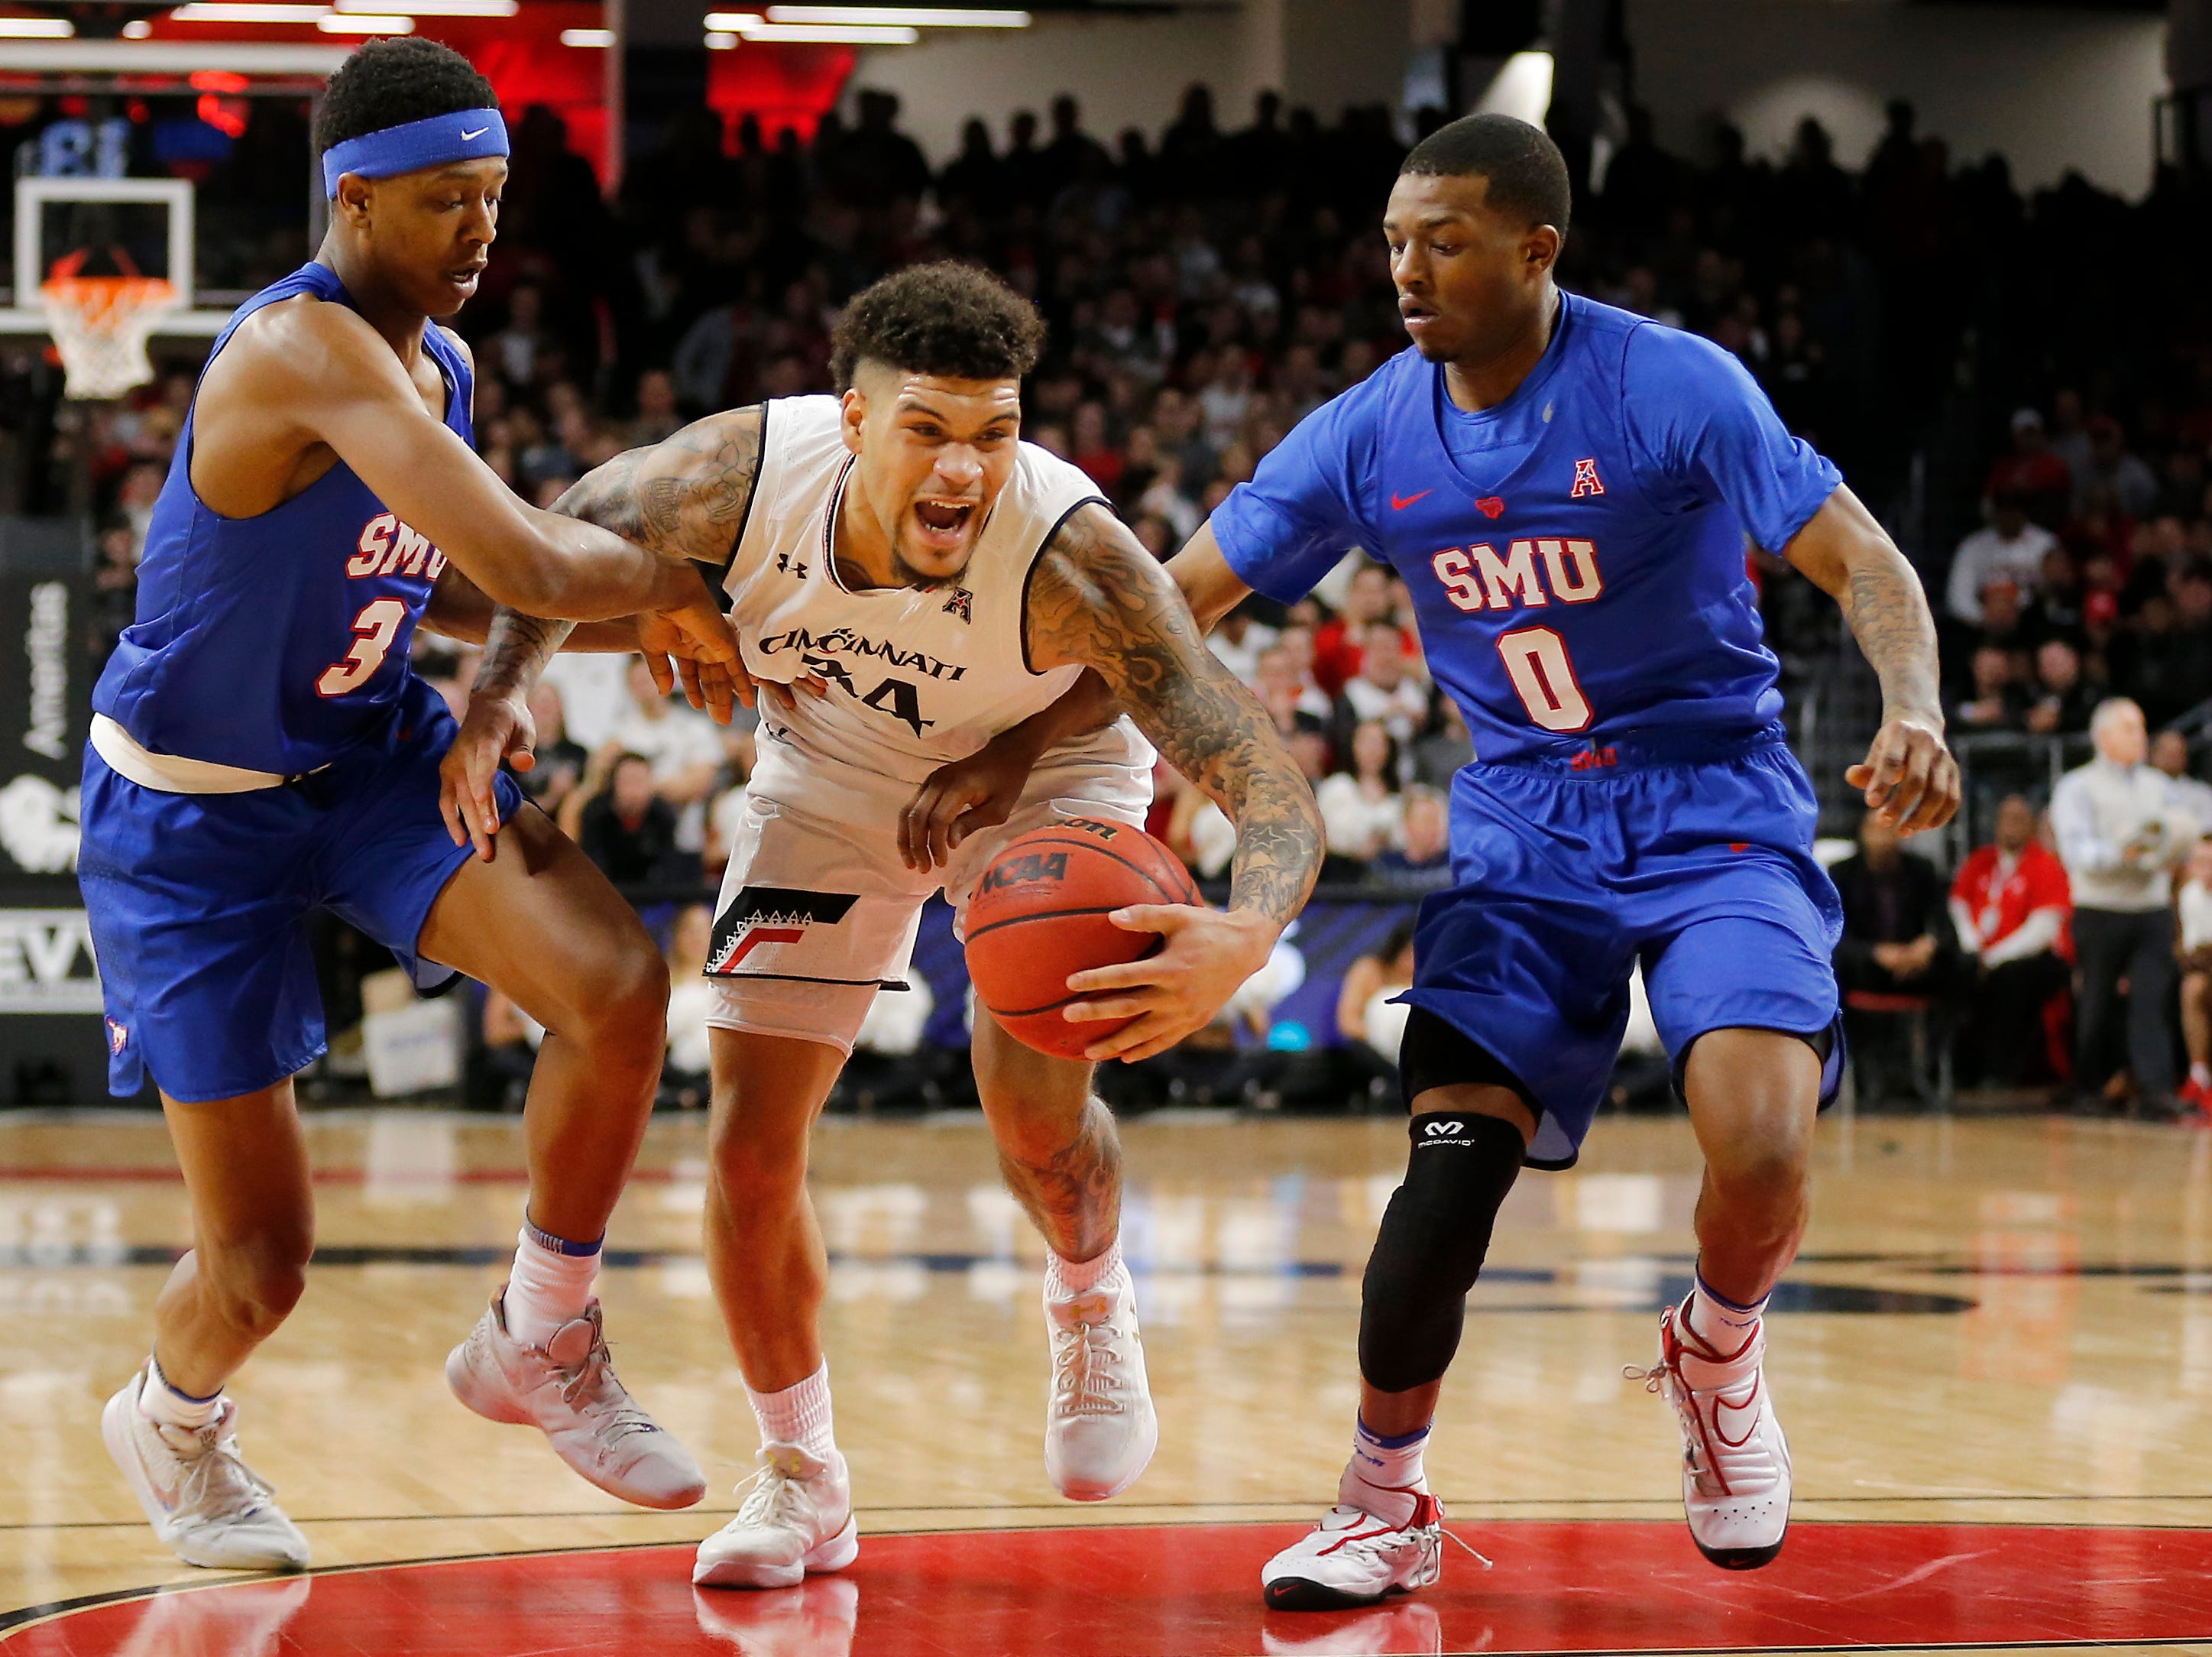 Cincinnati Bearcats guard Jarron Cumberland (34) drives into the paint against Southern Methodist Mustangs guard William Douglas (3) and guard Jahmal McMurray (0) in the first half the the NCAA American Athletic Conference basketball game between the Cincinnati Bearcats and the Southern Methodist Mustangs at Fifth Third Arena in Cincinnati on Saturday, Feb. 2, 2019.